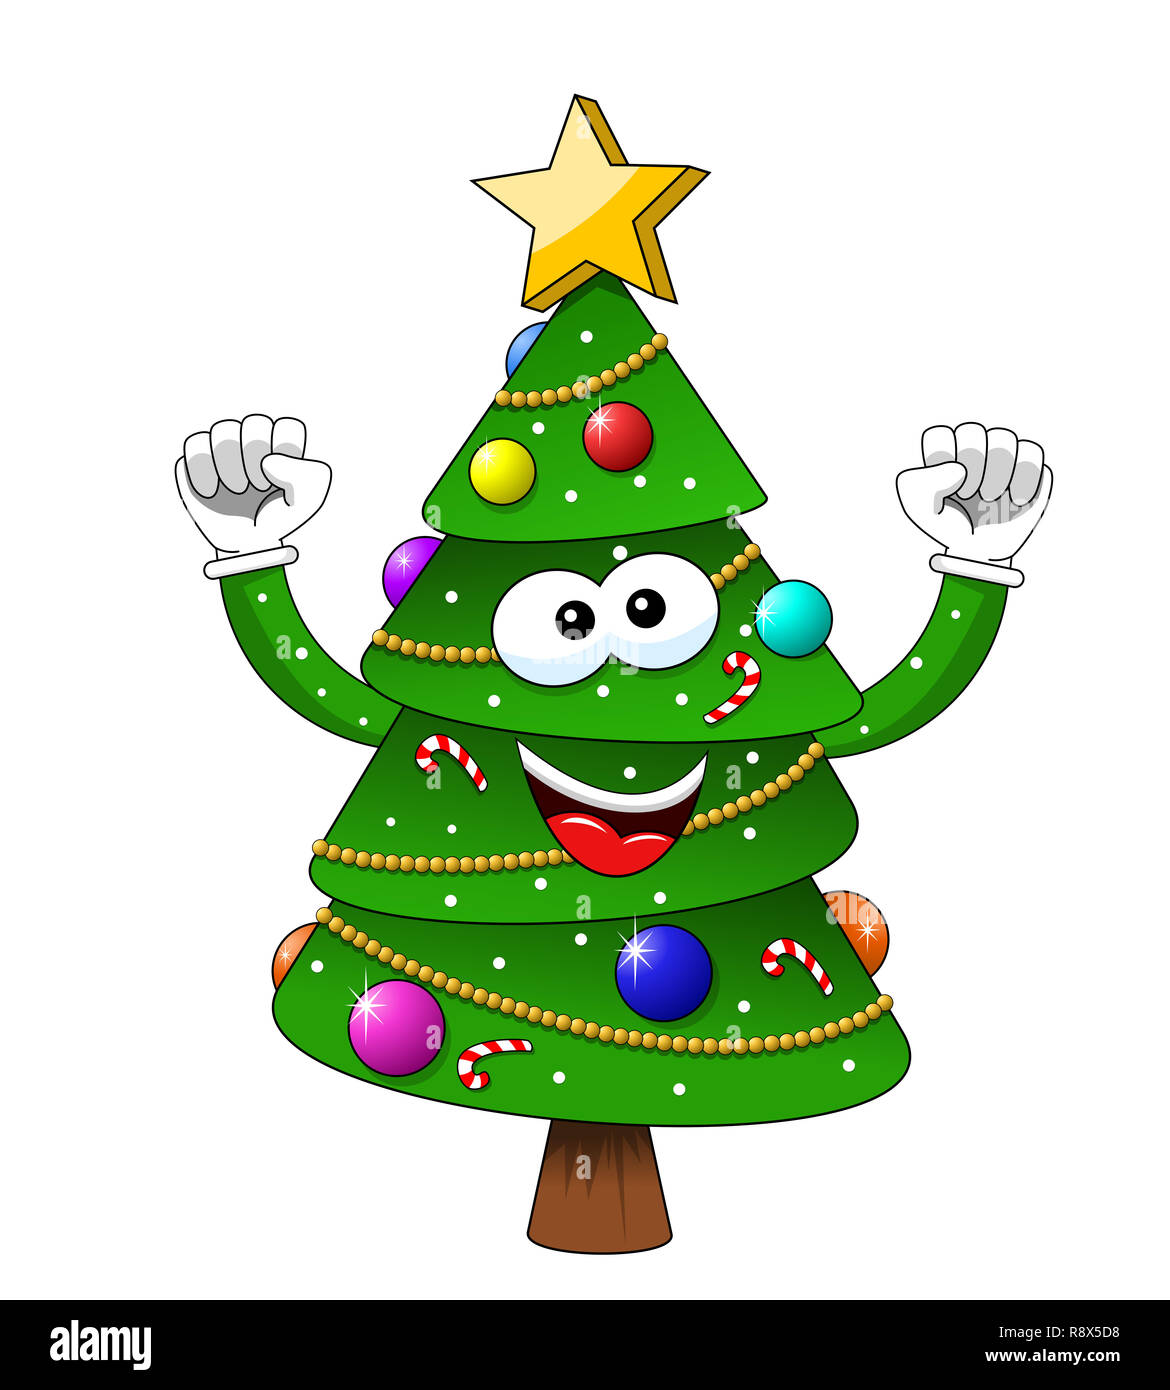 cartoon xmas christmas tree exulting happiness isolated stock photo alamy https www alamy com cartoon xmas christmas tree exulting happiness isolated image229227076 html